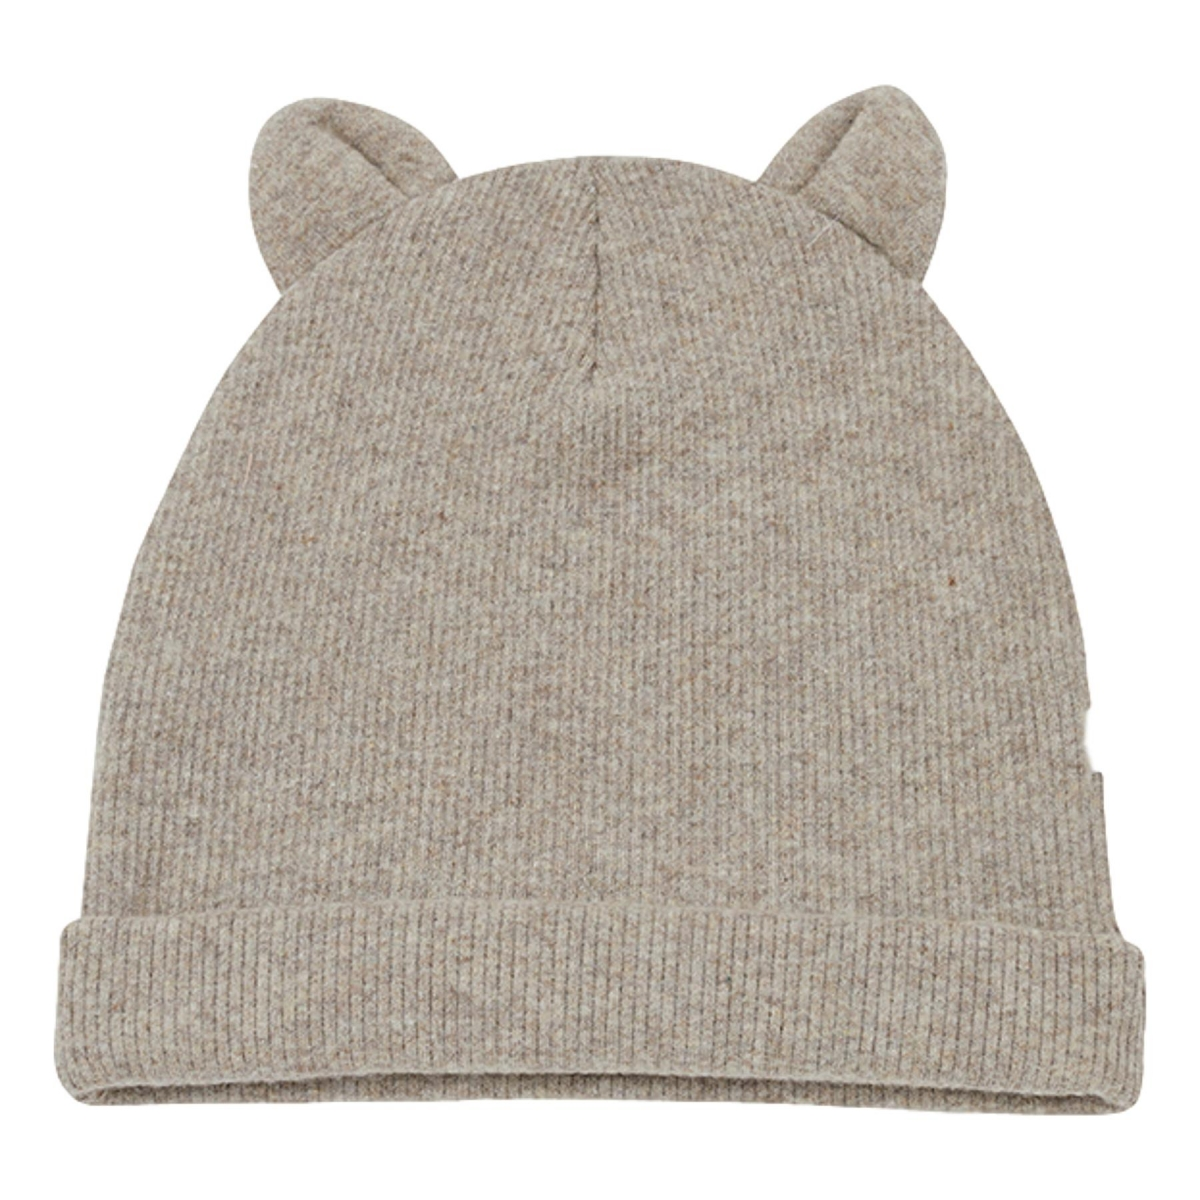 1 + in the family - Mull Beanie With Ears beige - 1